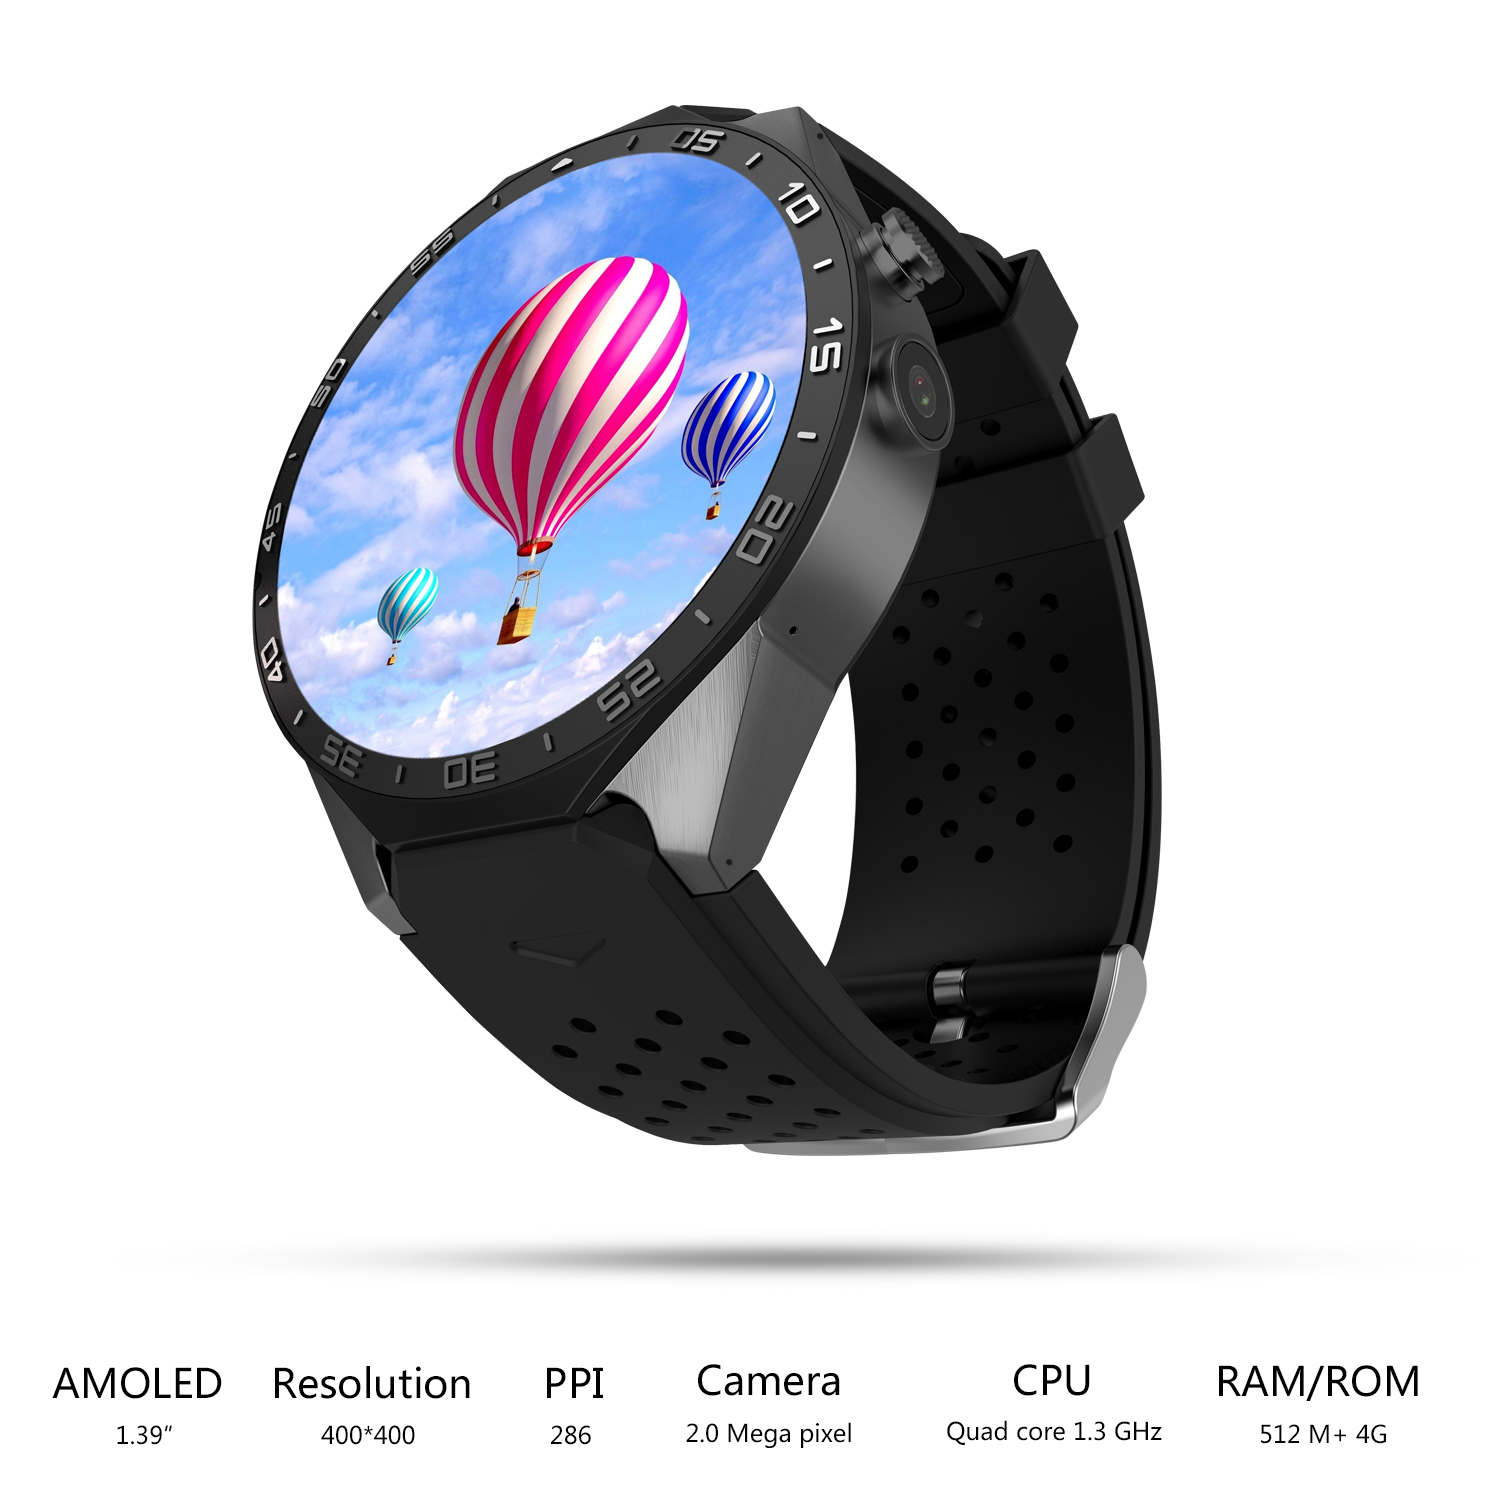 ot01 2017 Hot Kw88 android 5.1 OS Smart watch 1.39 inch 400*400 SmartWatch phone support 3G wifi nano SIM WCDMA Heart Rate kw88 smart watch android 5 1 os quad core 400 400 smartwatch mtk6580 support 3g wifi nano sim card gps heart rate wristwatch